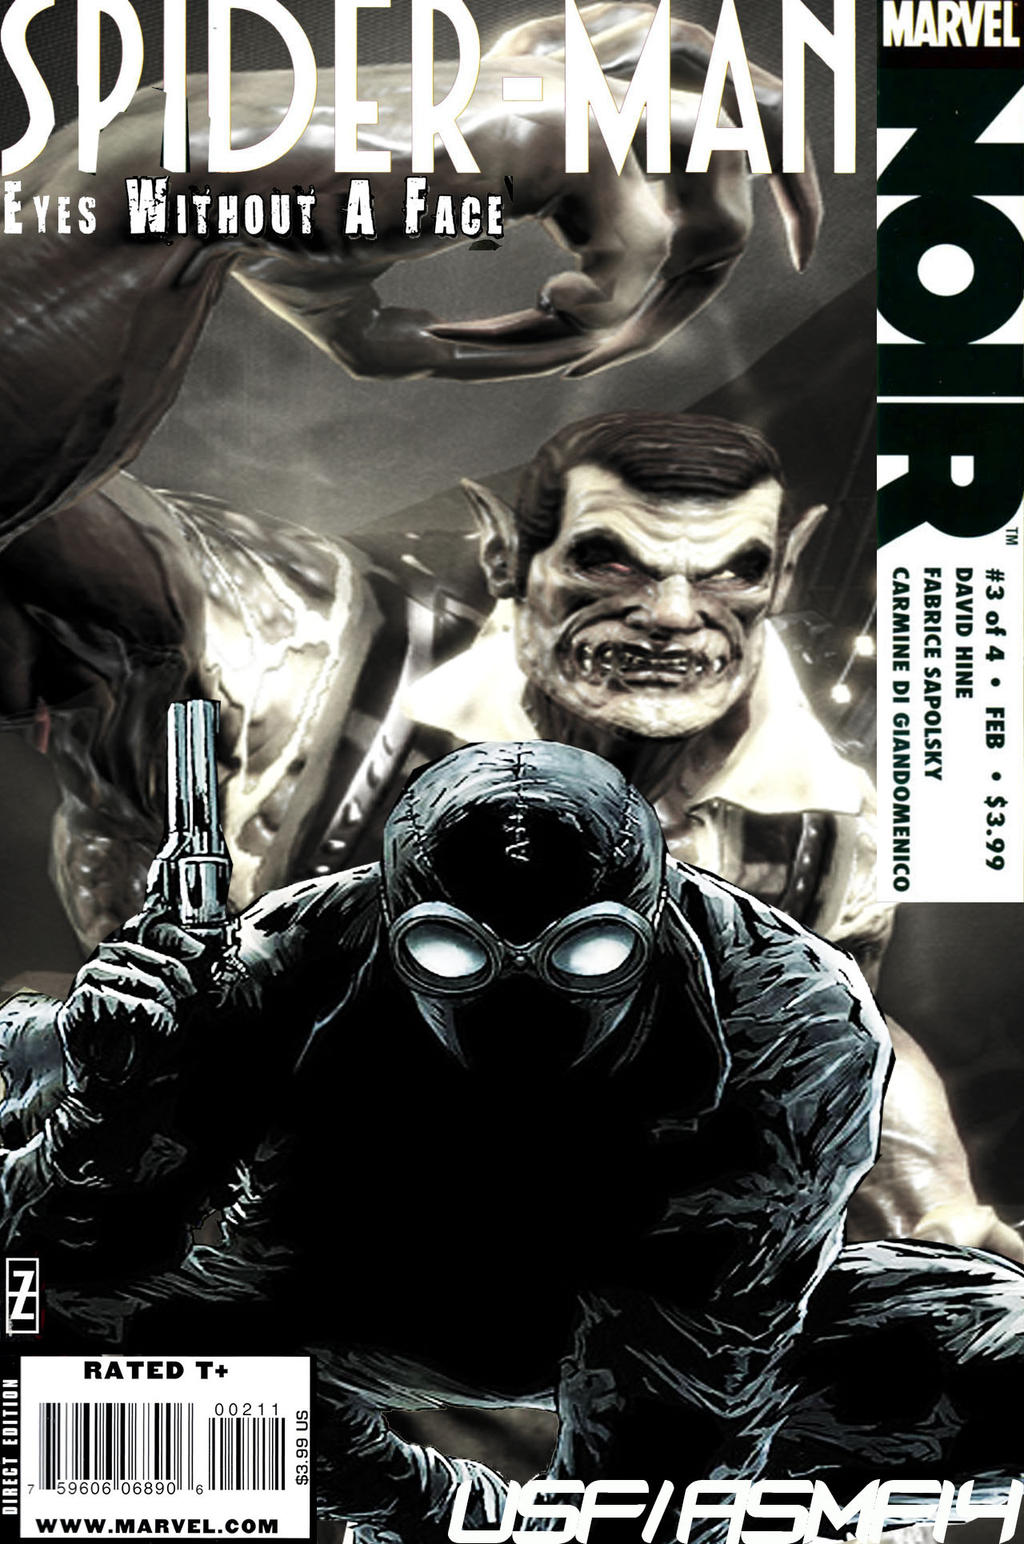 spider-man noir eyes without a face 1 variant marvel 2009